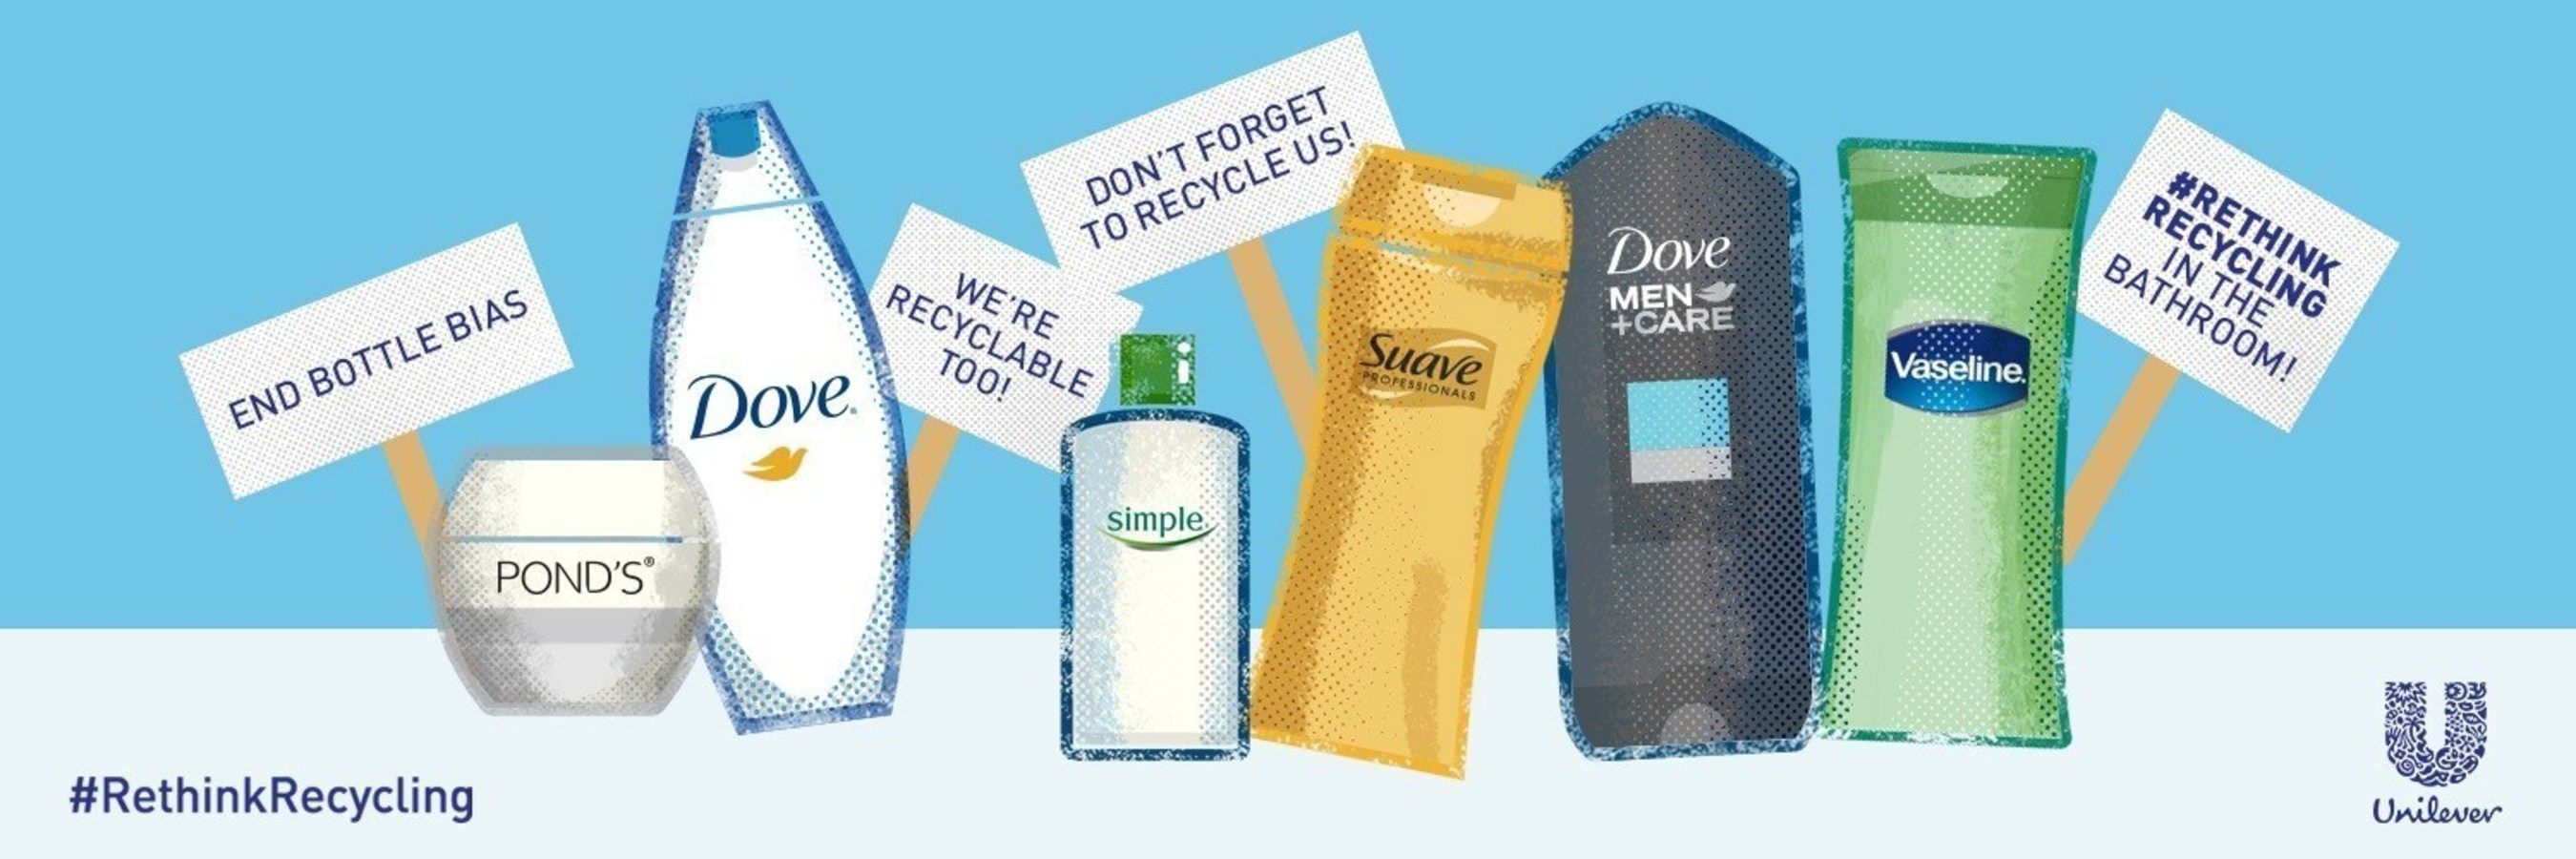 Unilever Rinse.Recycle.Reimagine. campaign inspires consumers to end bottle bias and recycle bathroom empties as often as their kitchen counterparts